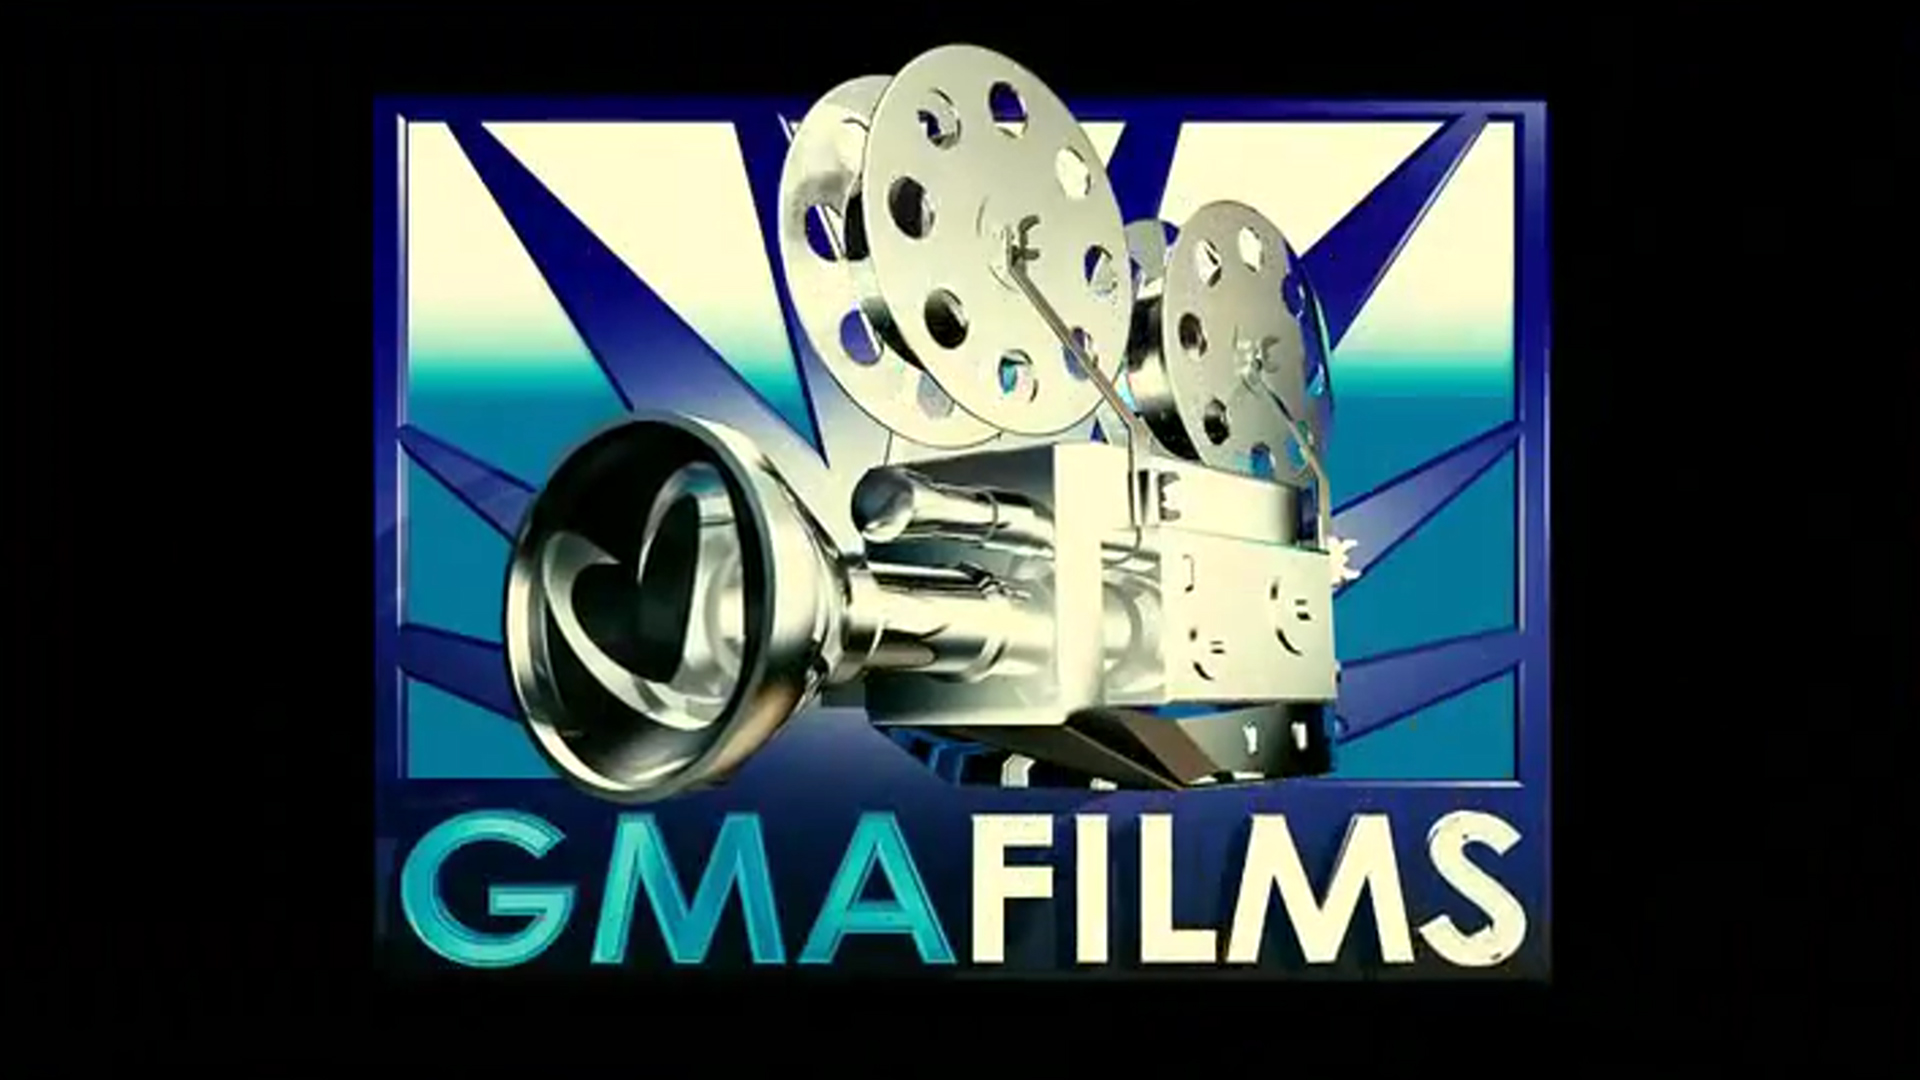 GMA Films 2002 logo